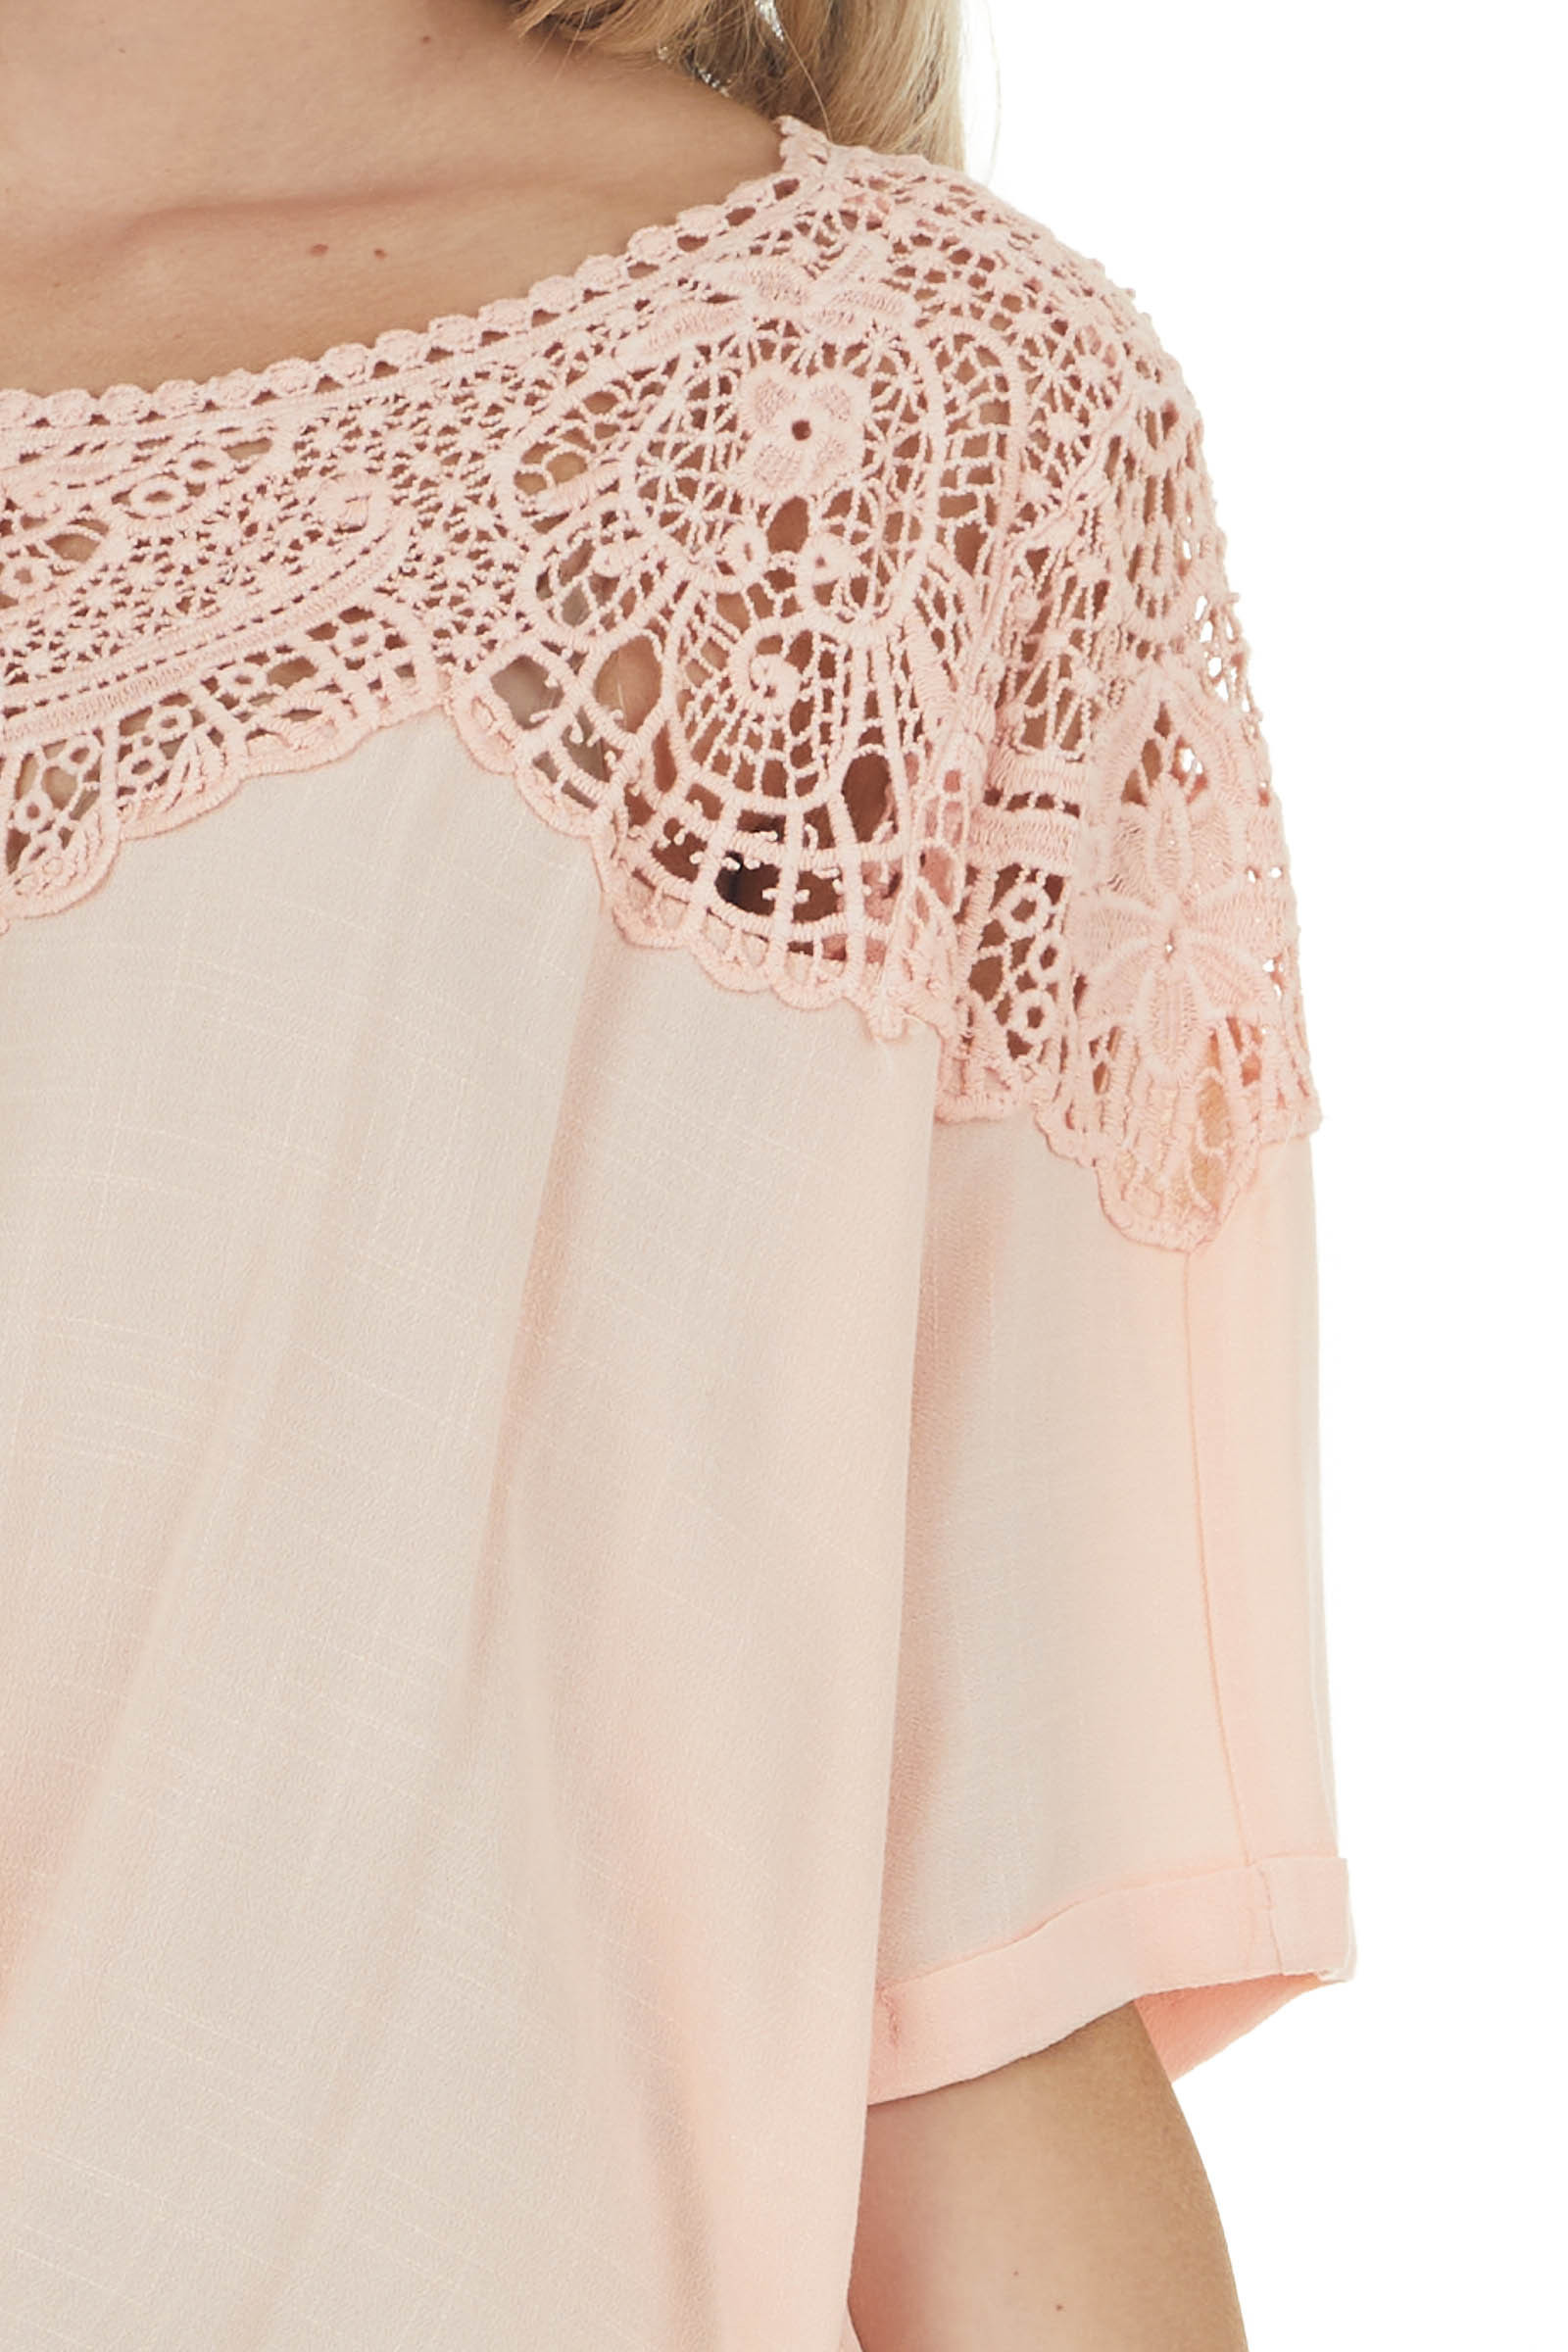 Peach Short Sleeve Crochet Lace Trim Blouse with Front Tie